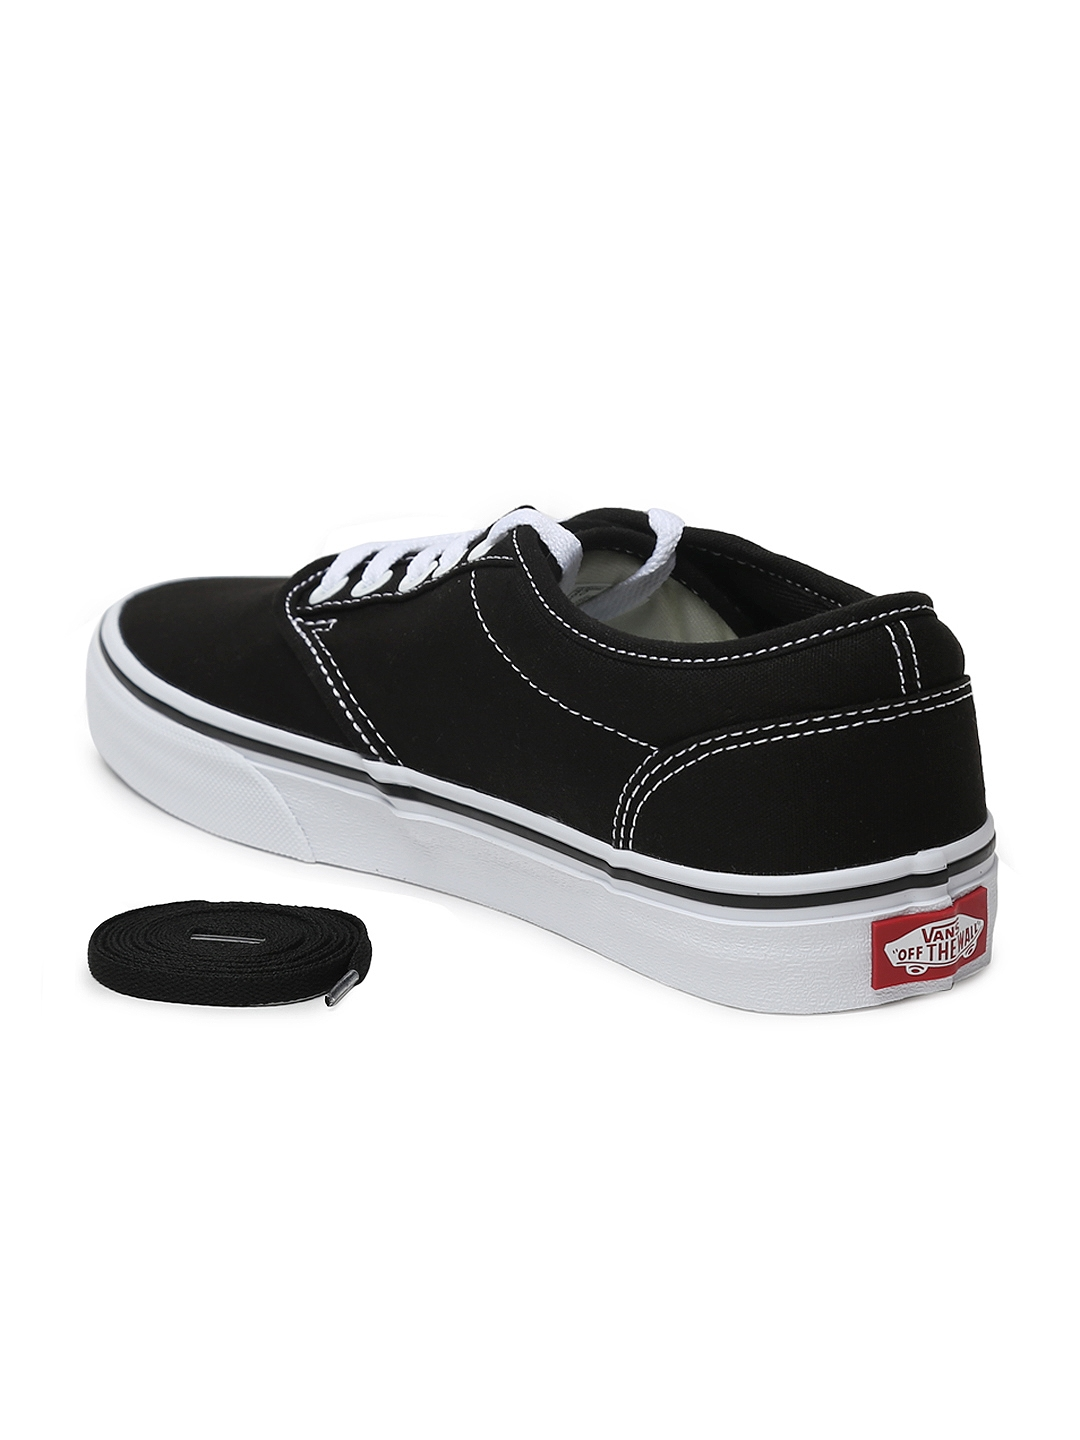 721ee7714e Buy Vans Women Black Atwood Sneakers - Casual Shoes for Women ...